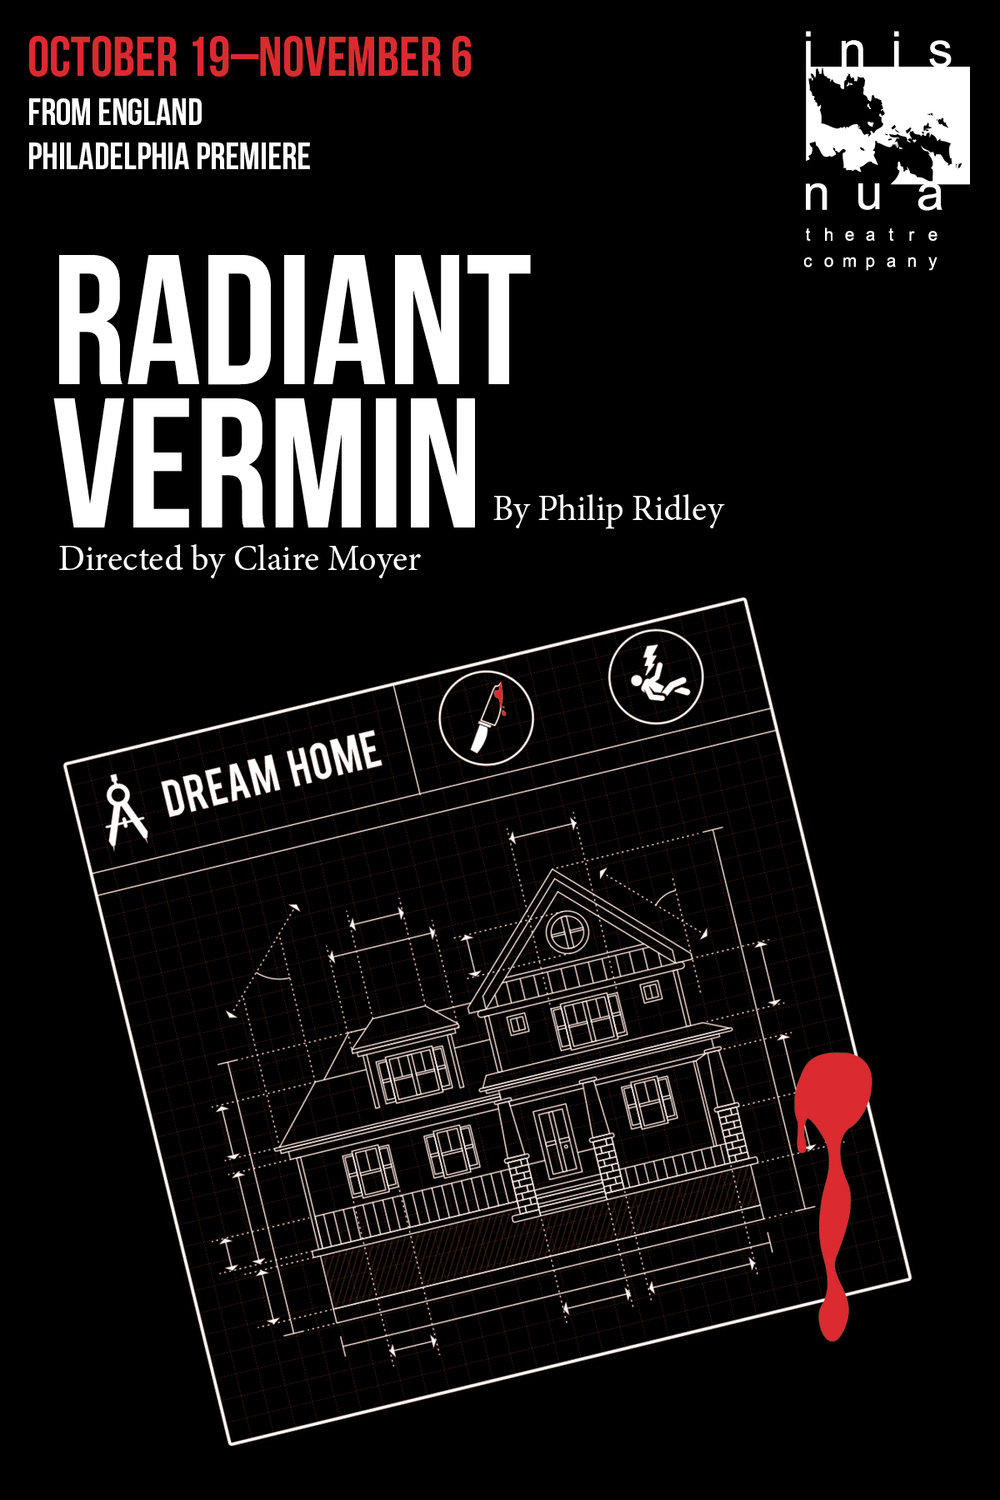 Inis Nua Theatre Company presents Radiant Vermin oct 19-nov 6, 2016